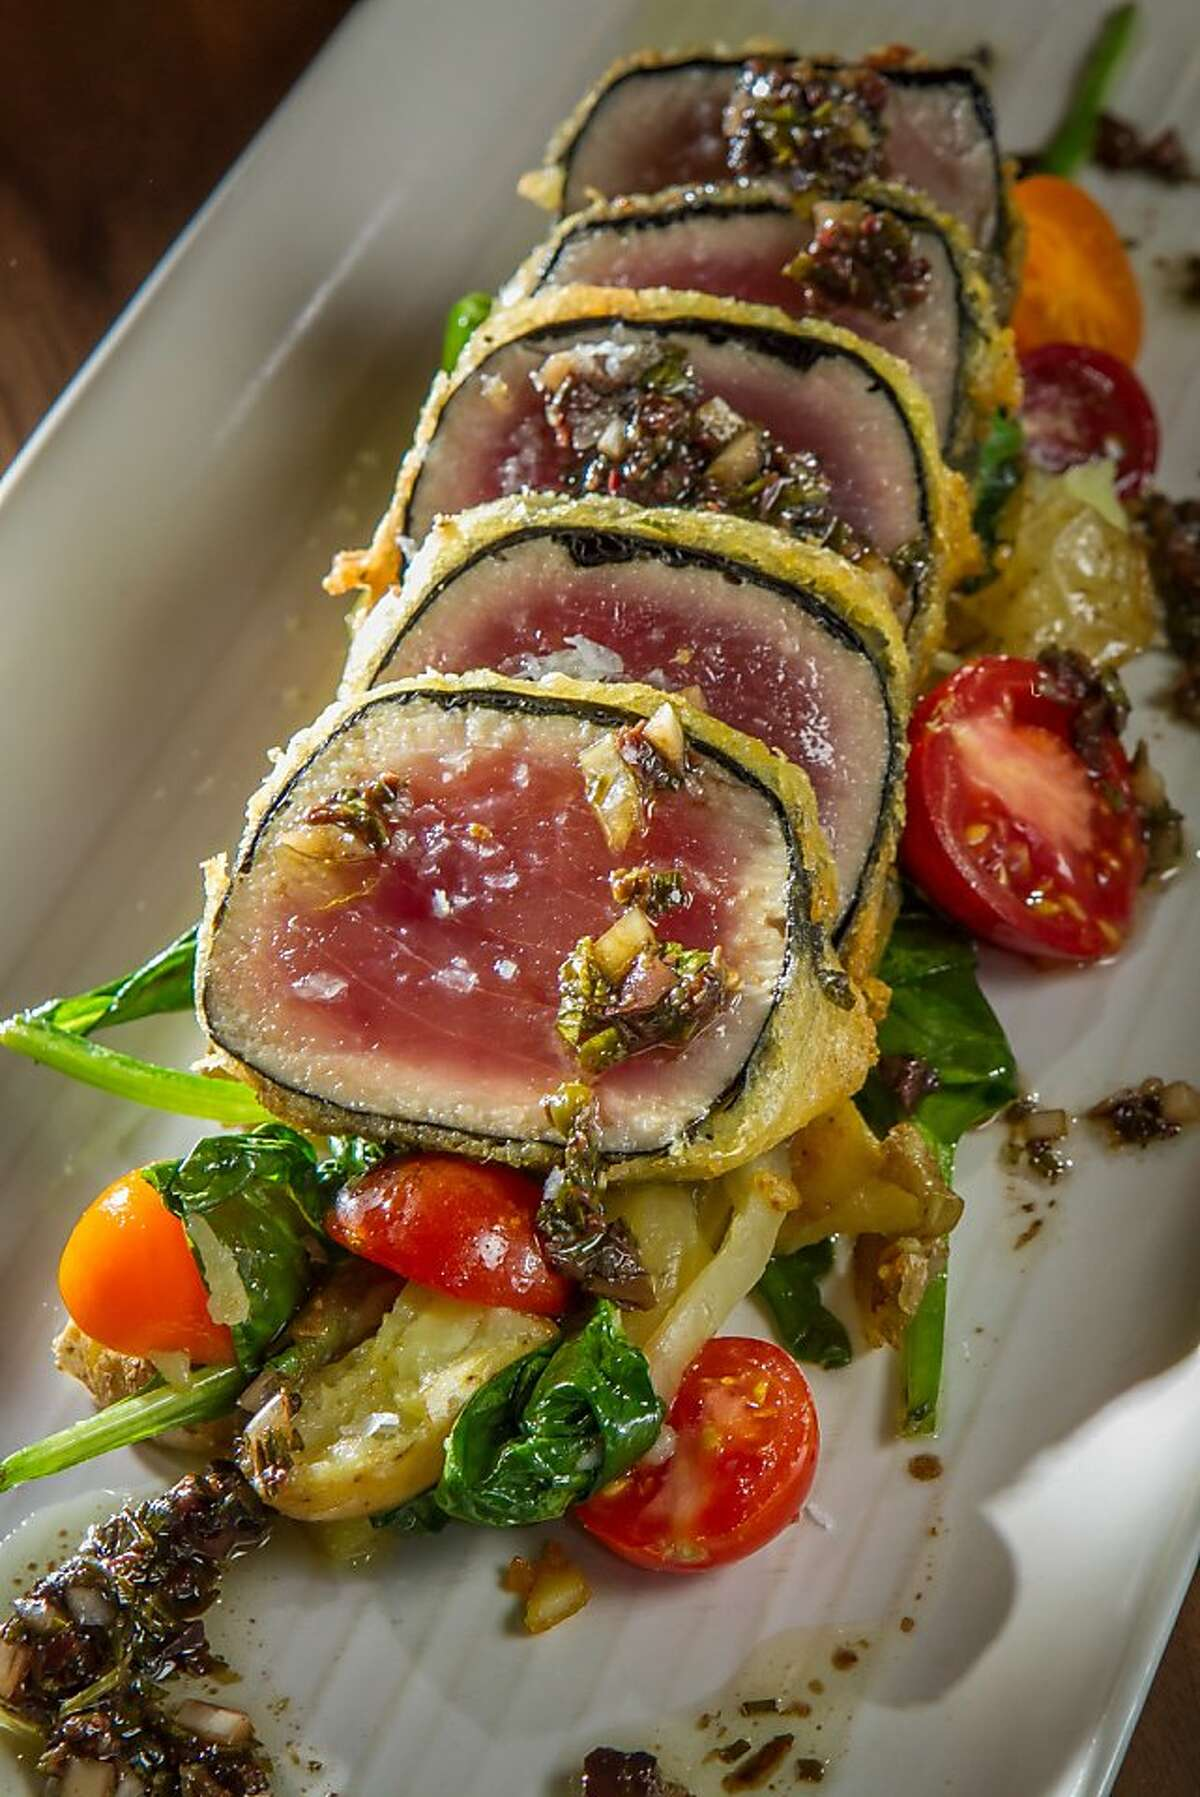 The Nori-Wrapped Ahi at Park Bistro & Bar in Lafayette, Calif., is seen on Friday, September 27th, 2013.